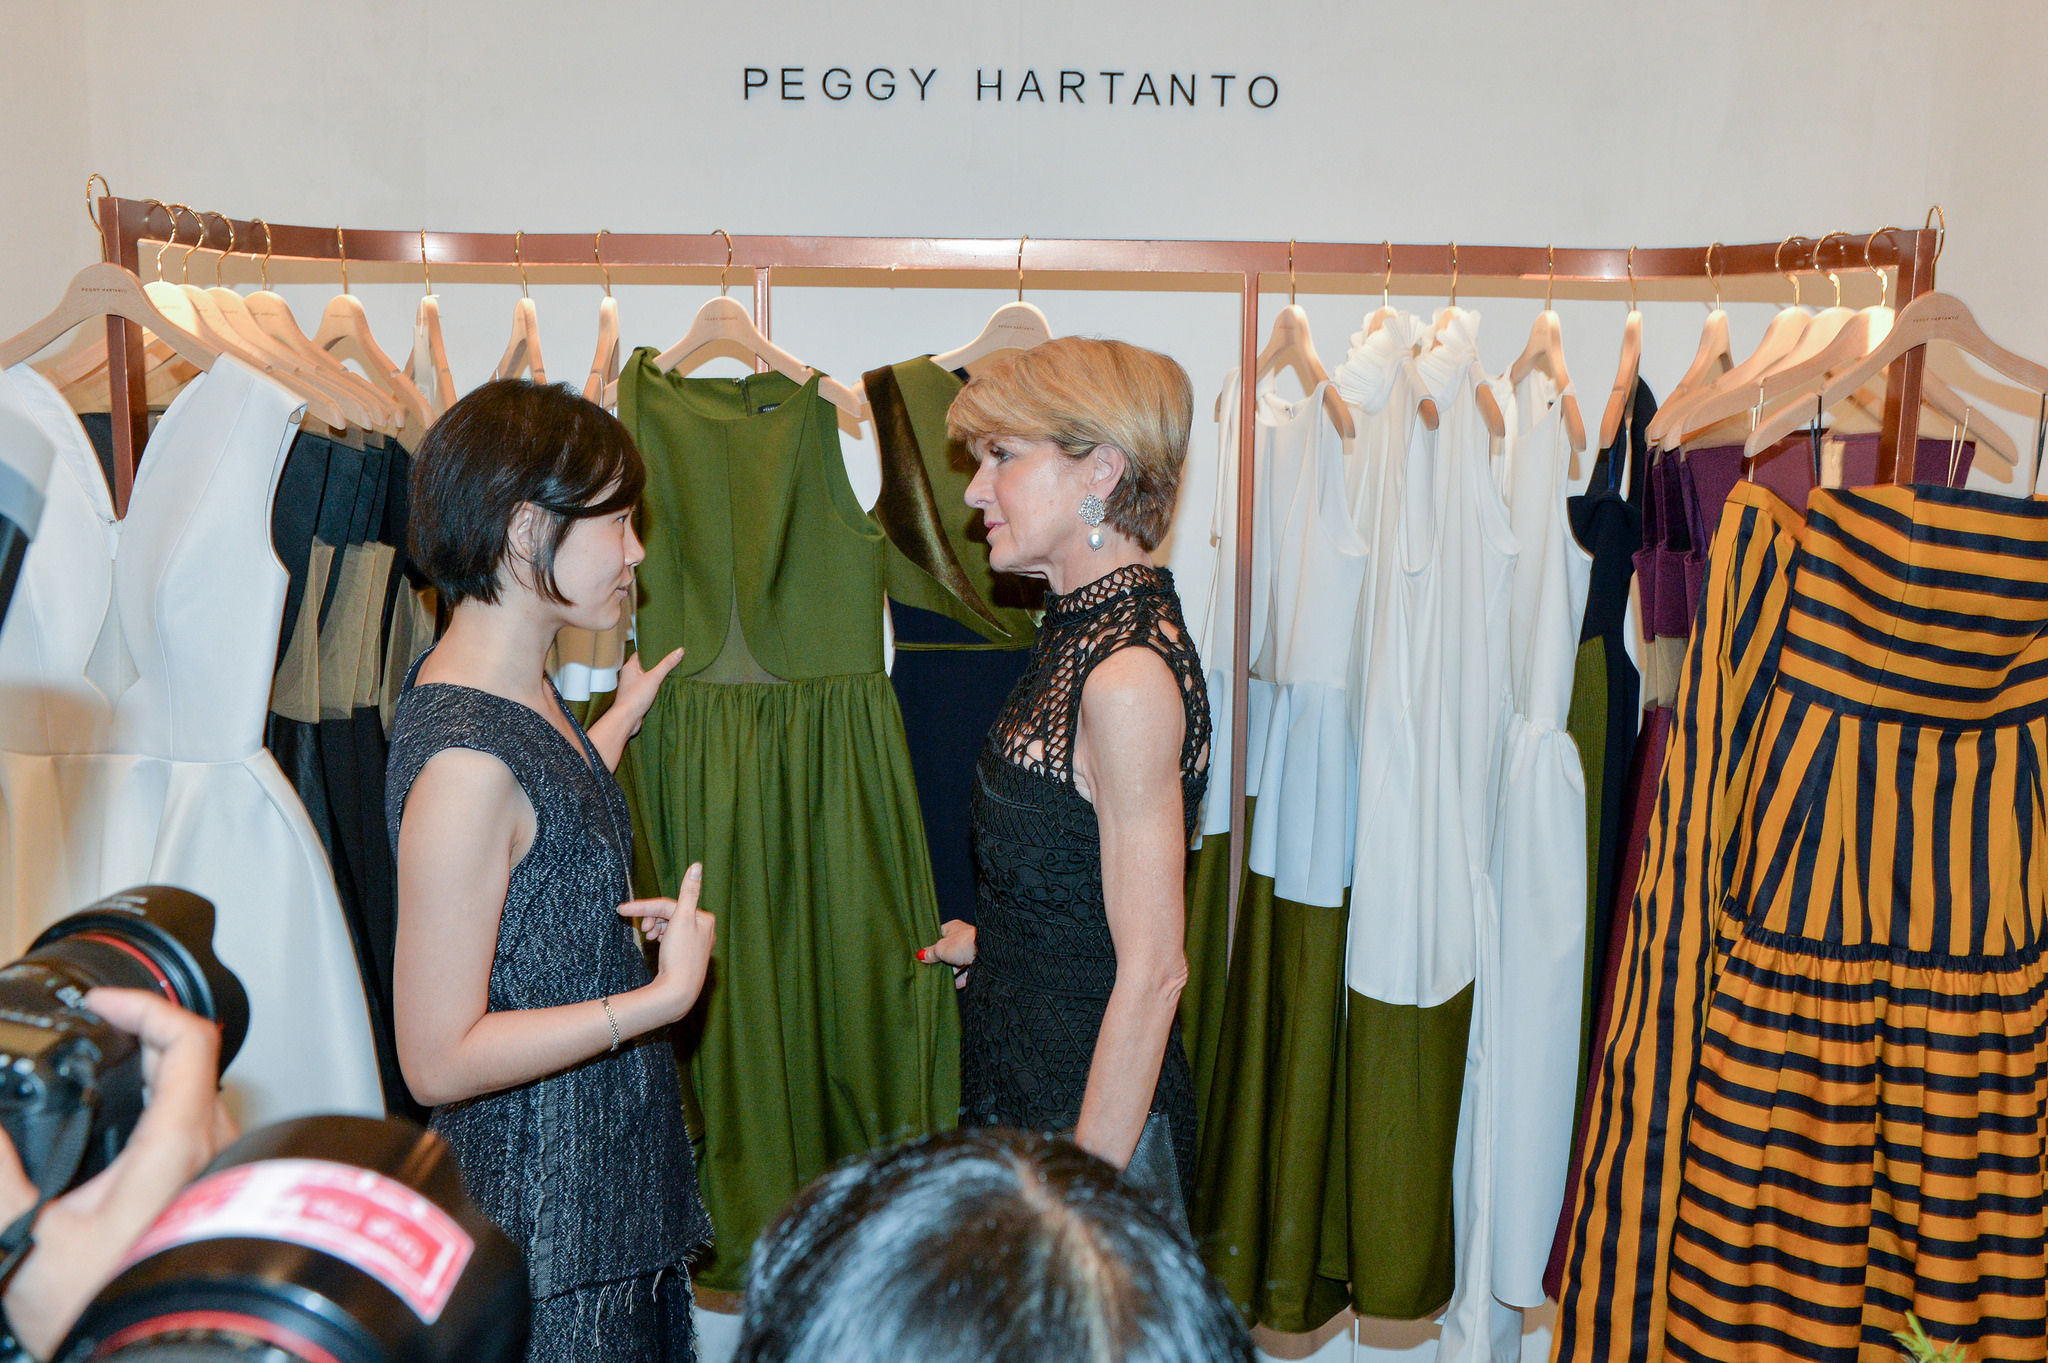 10 Indonesian Fashion Designers You Should Know